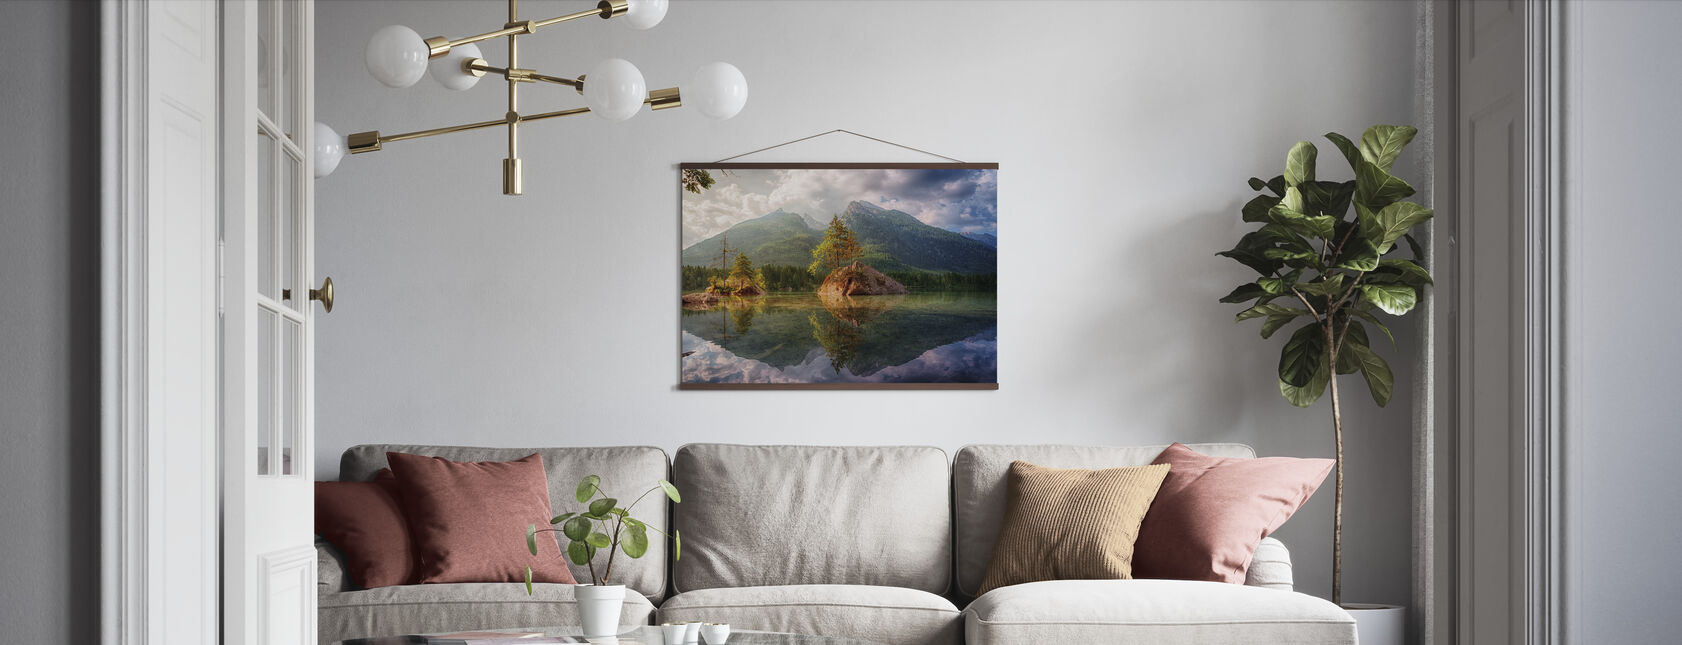 Lake and Mountain Reflection - Poster - Living Room